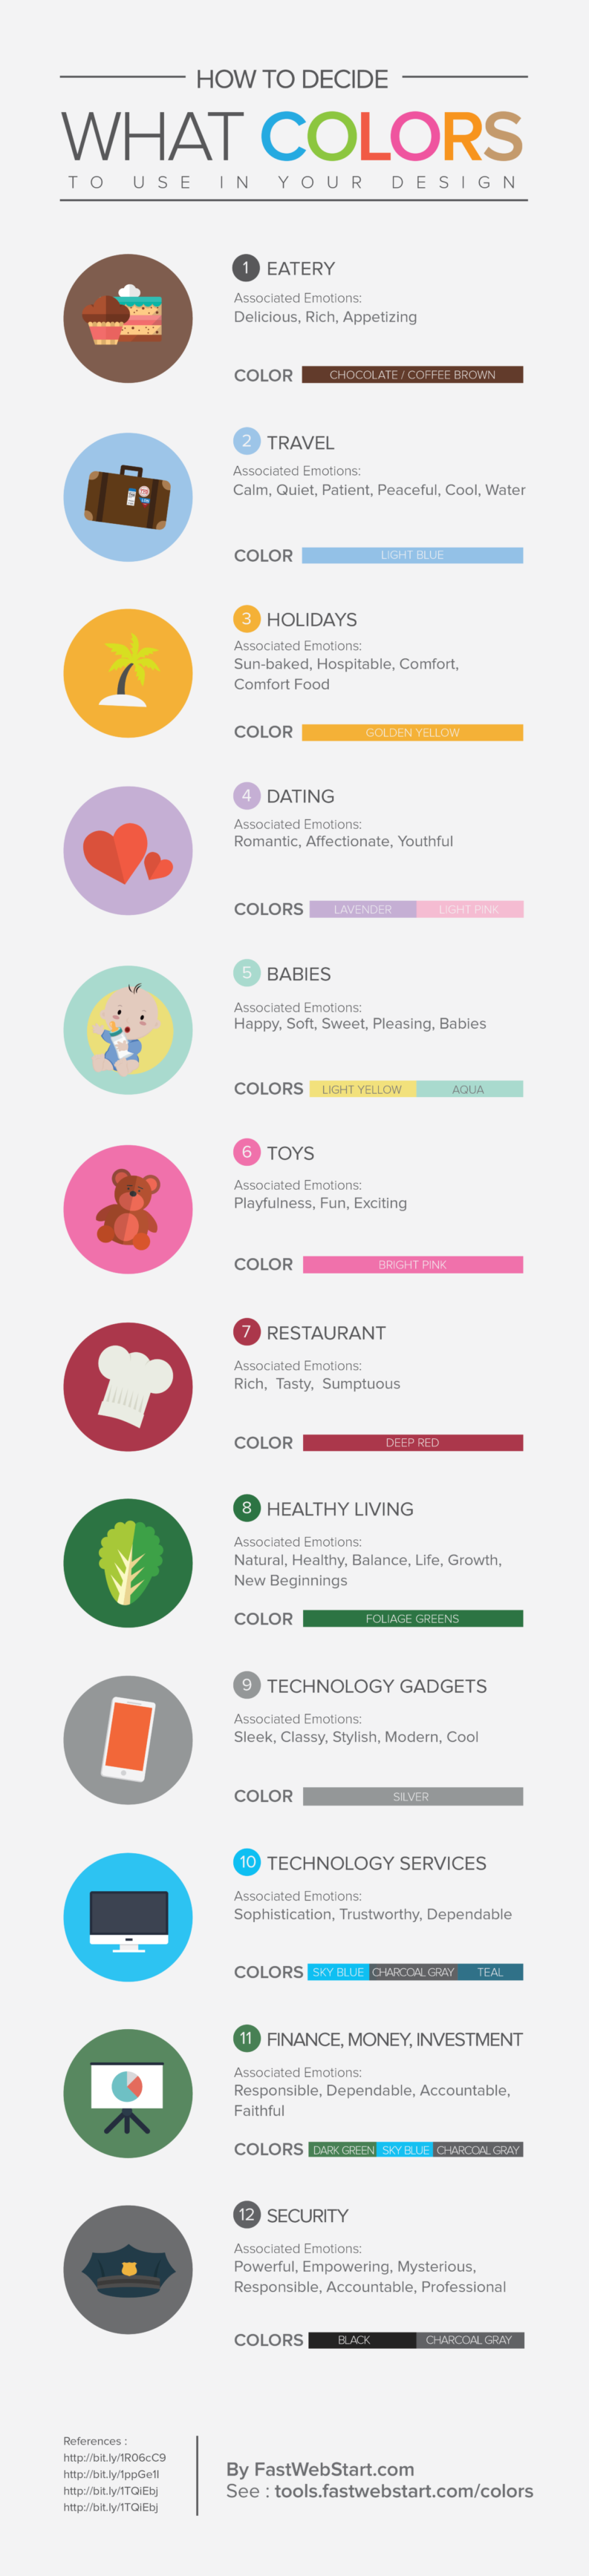 how-to-decide-what-colors-to-use-in-your-design-infographic_573134a7e76d9